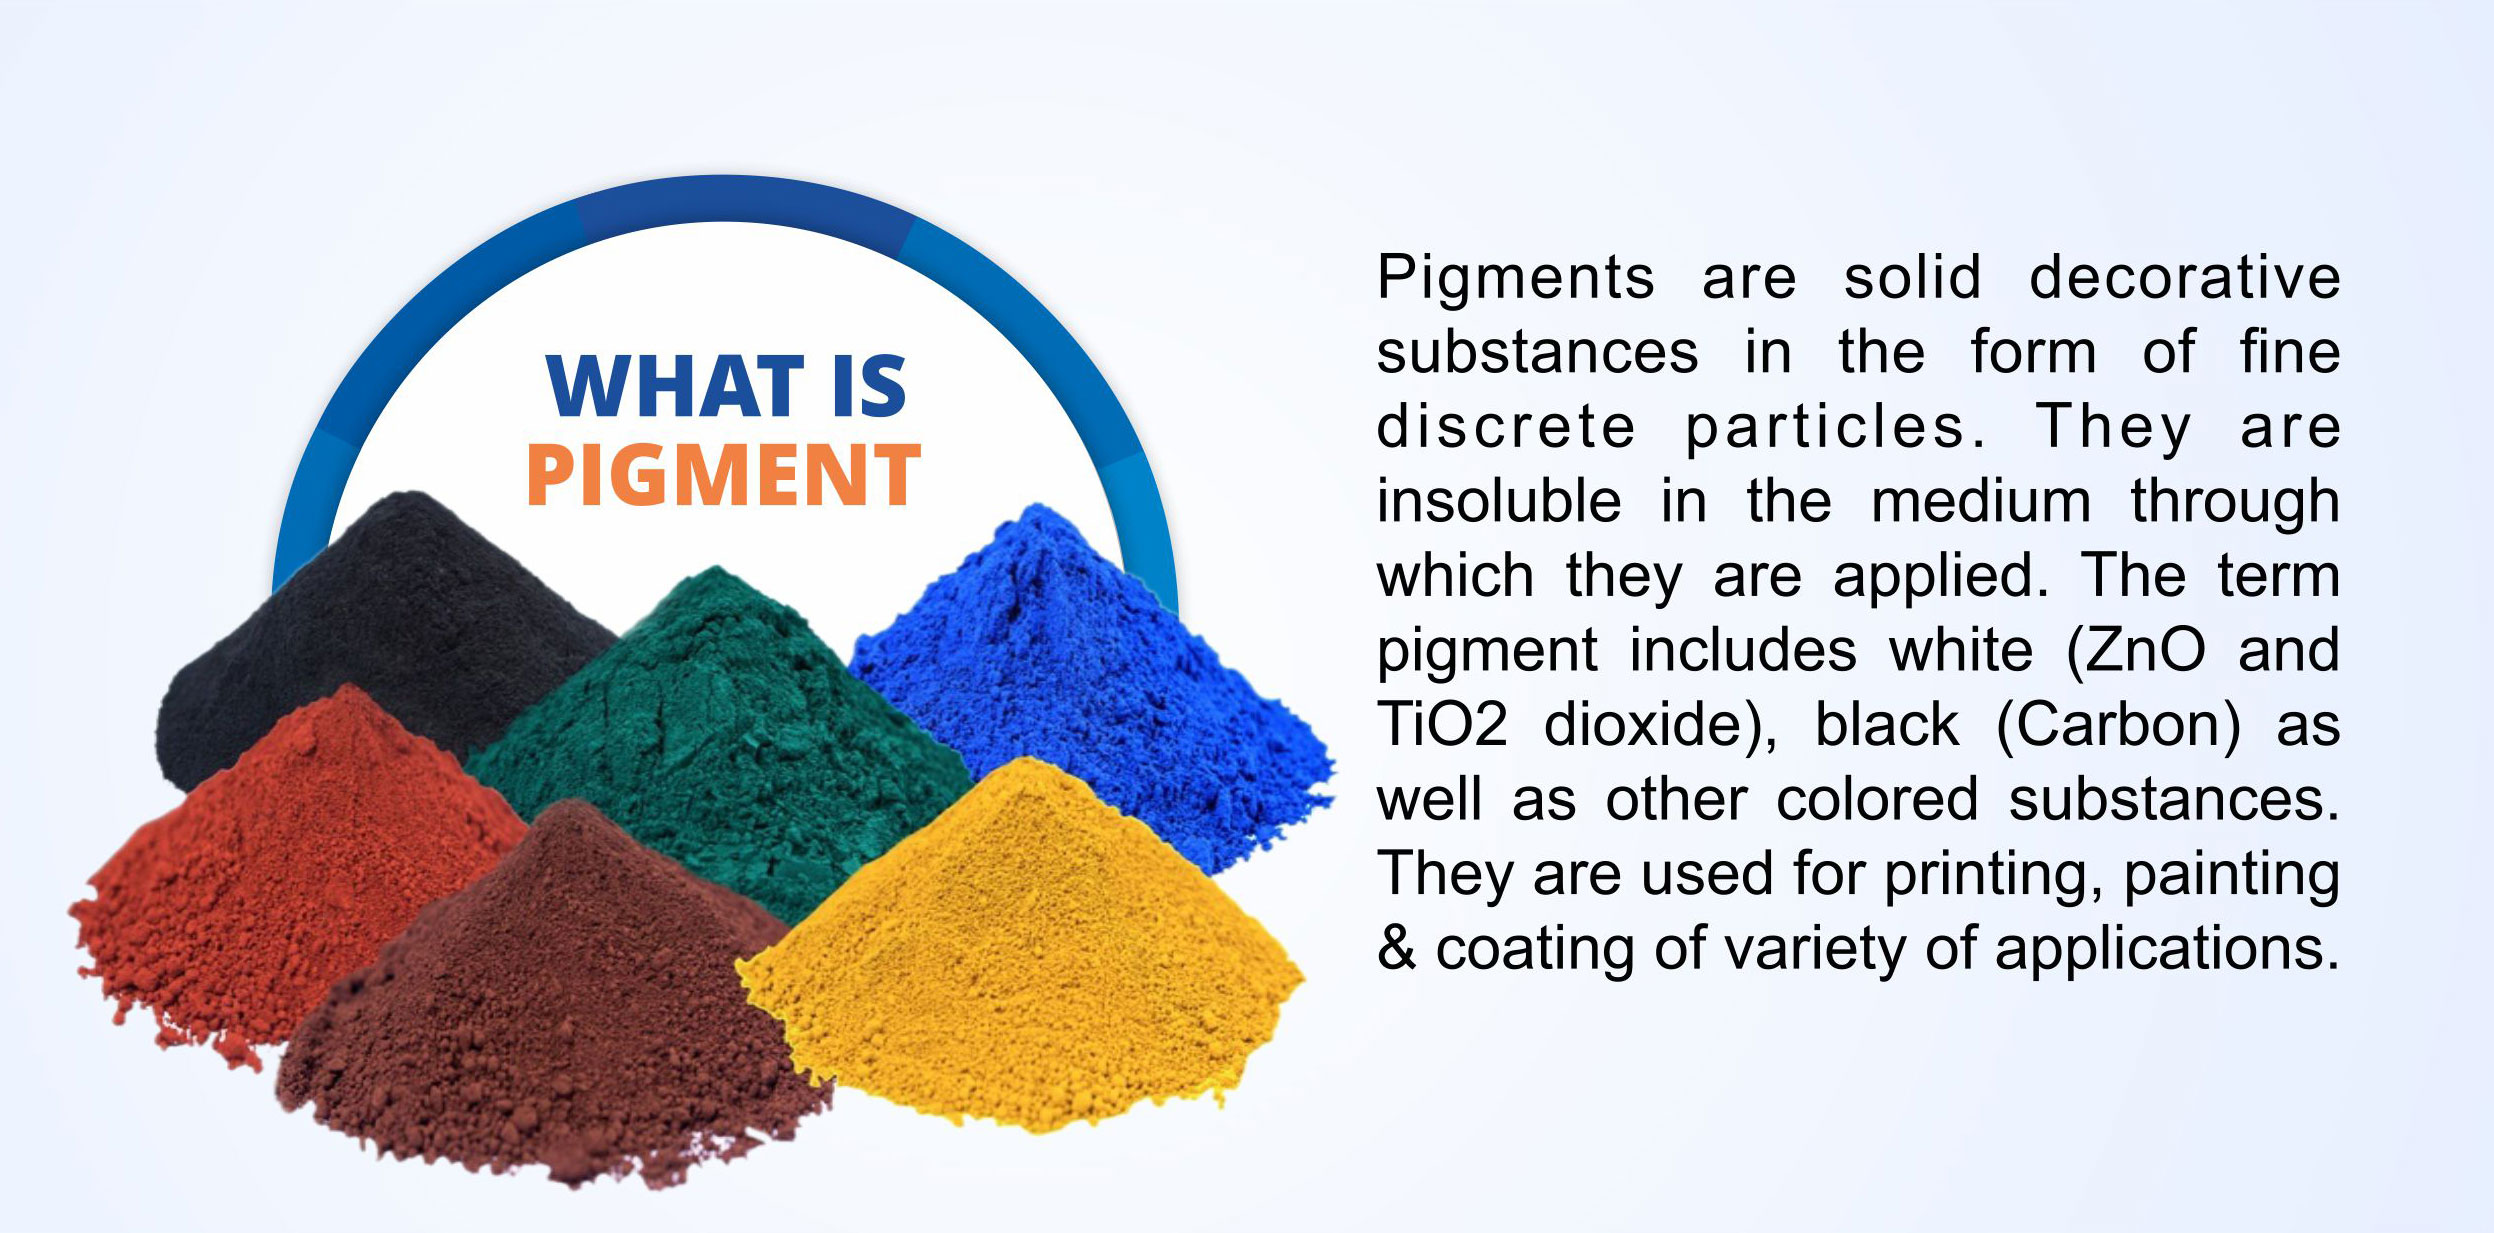 What is Pigment